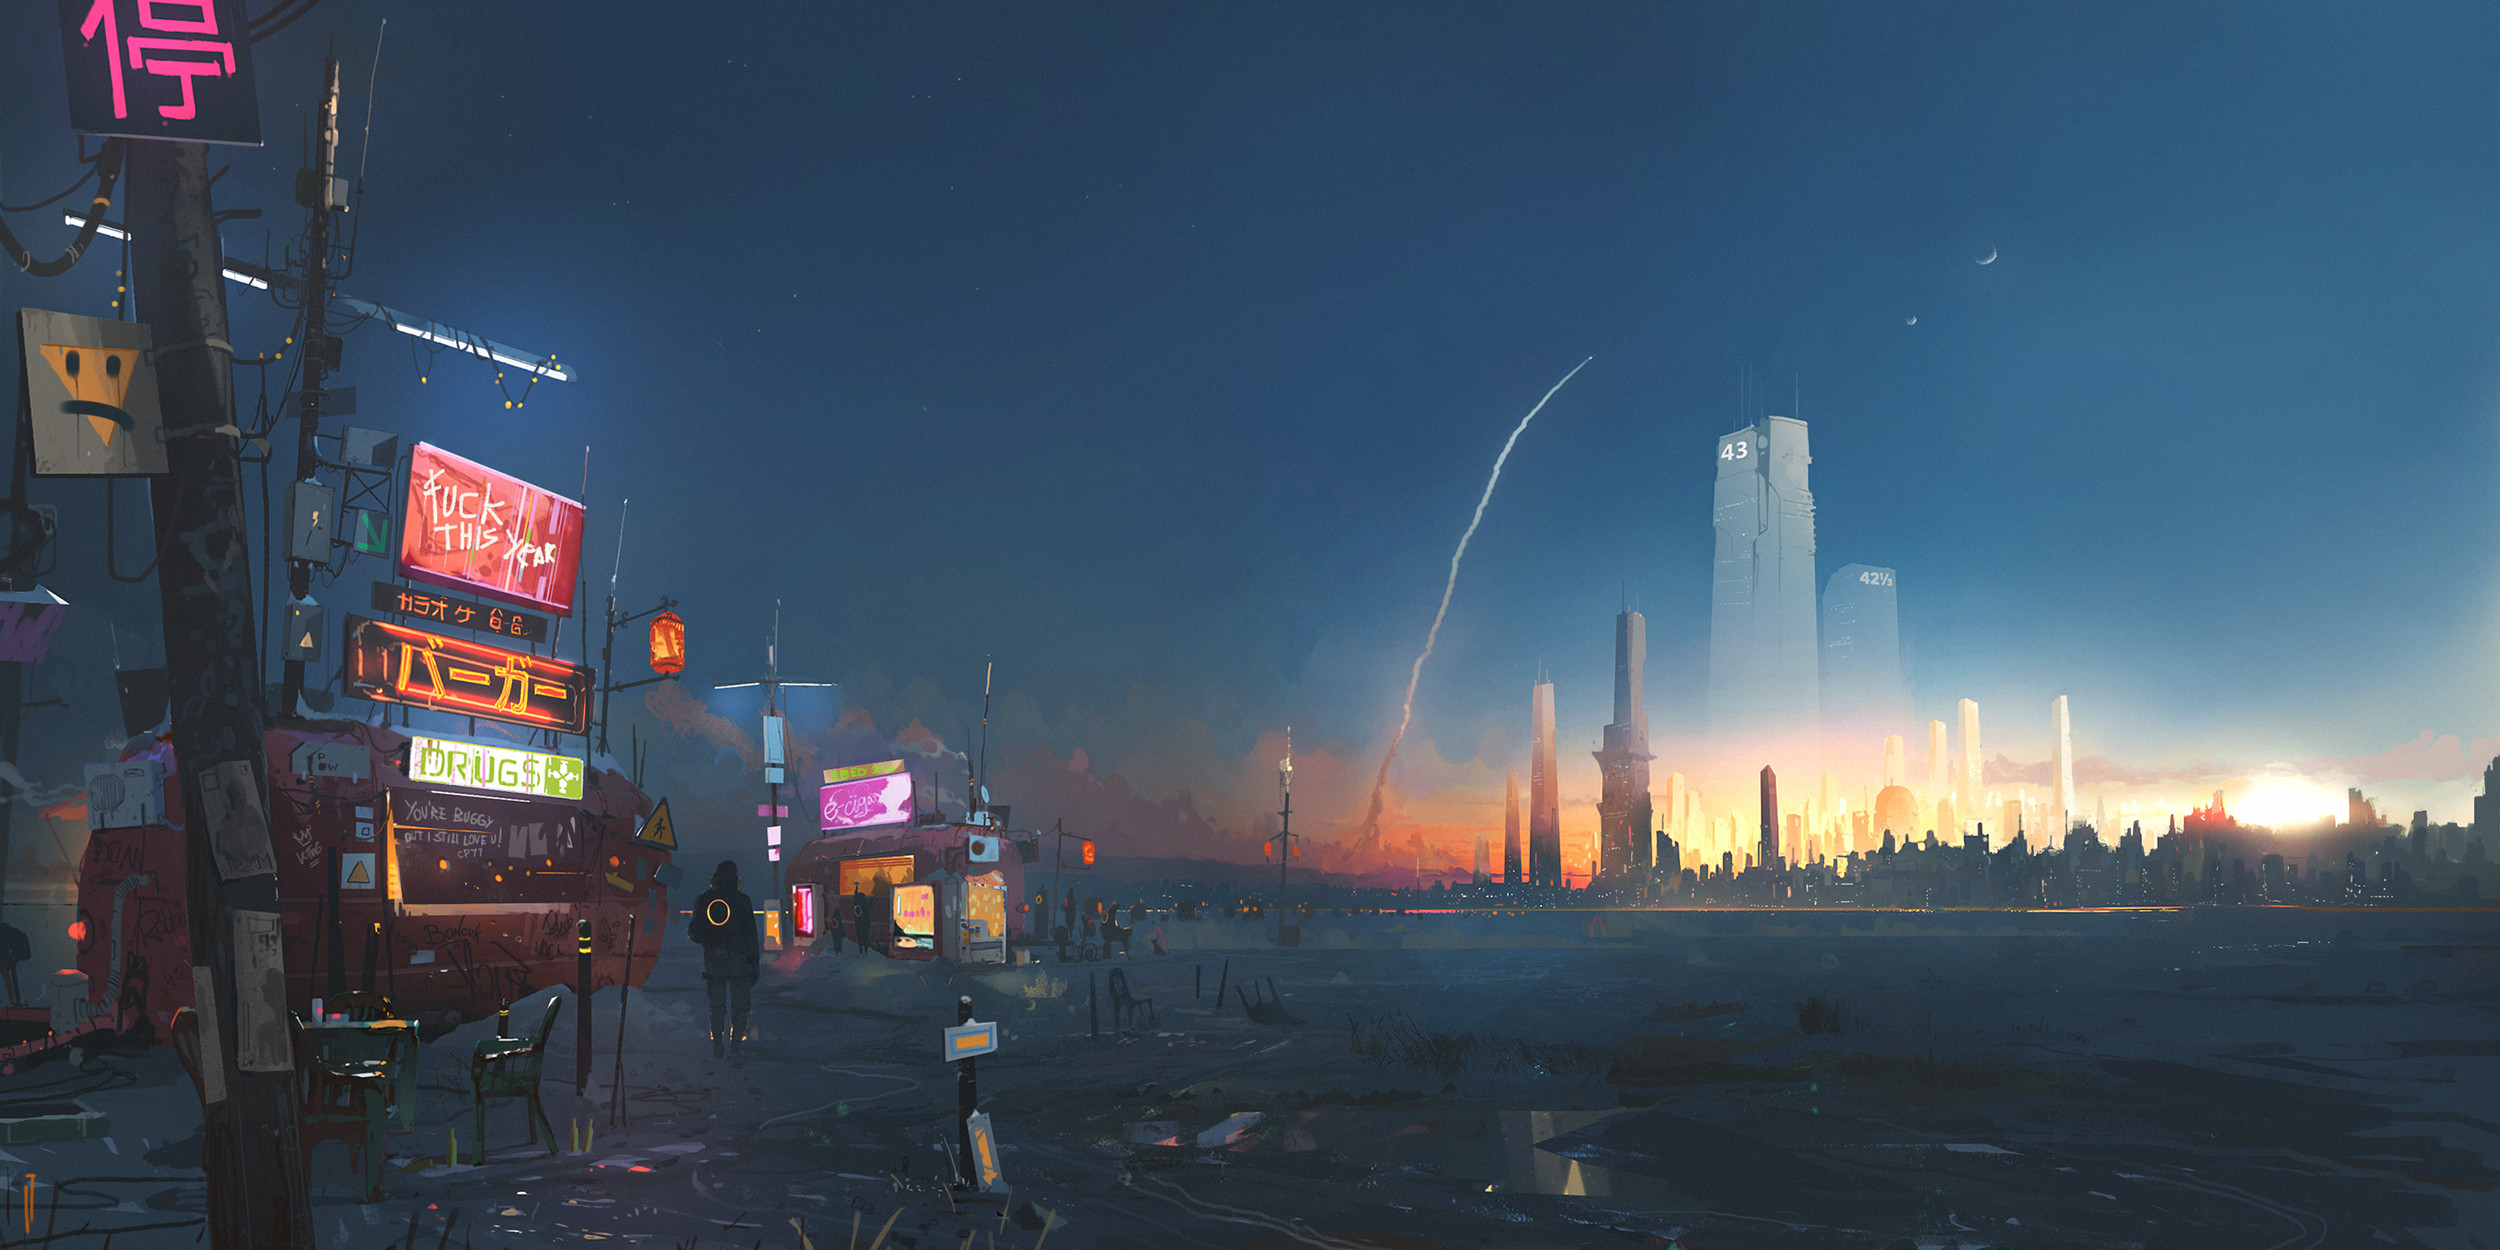 General 2500x1250 artwork digital art cityscape building science fiction Ismail Inceoglu cyberpunk futuristic city rocket road sign sunset